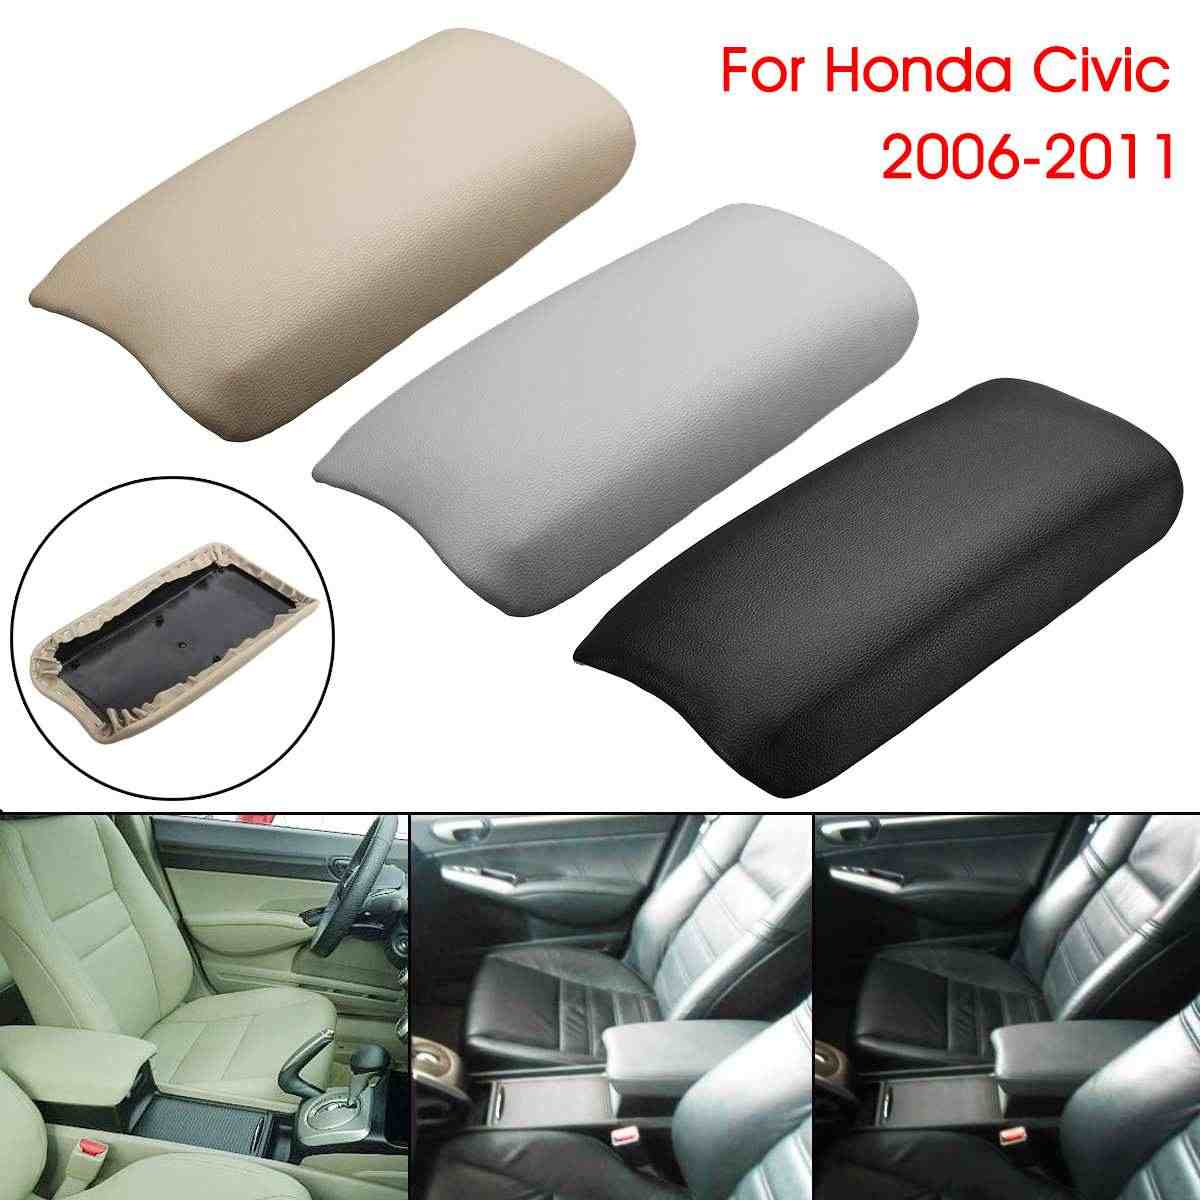 Car PU Leather Center Console Armrest Cover Arm Rest Box Lid Covers For Honda/Civic 2006-2011